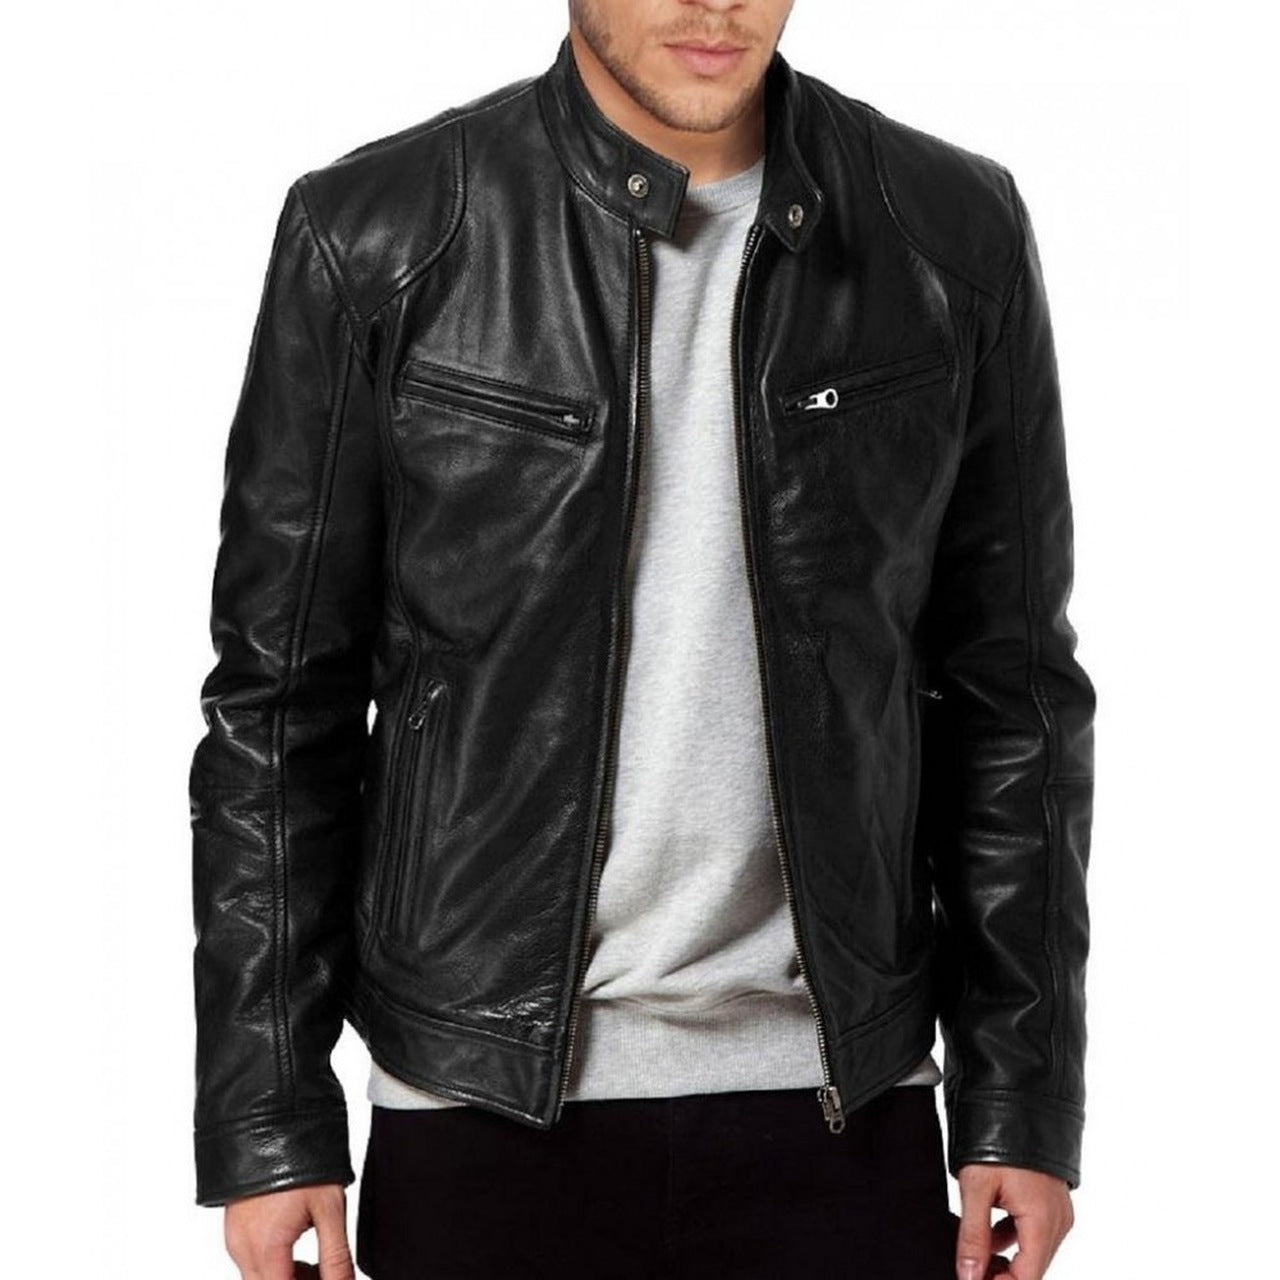 Lambskin leather jacket | Lambskin Leather Jacket Mens | Genuine Leather Jacket | Mens Jacket